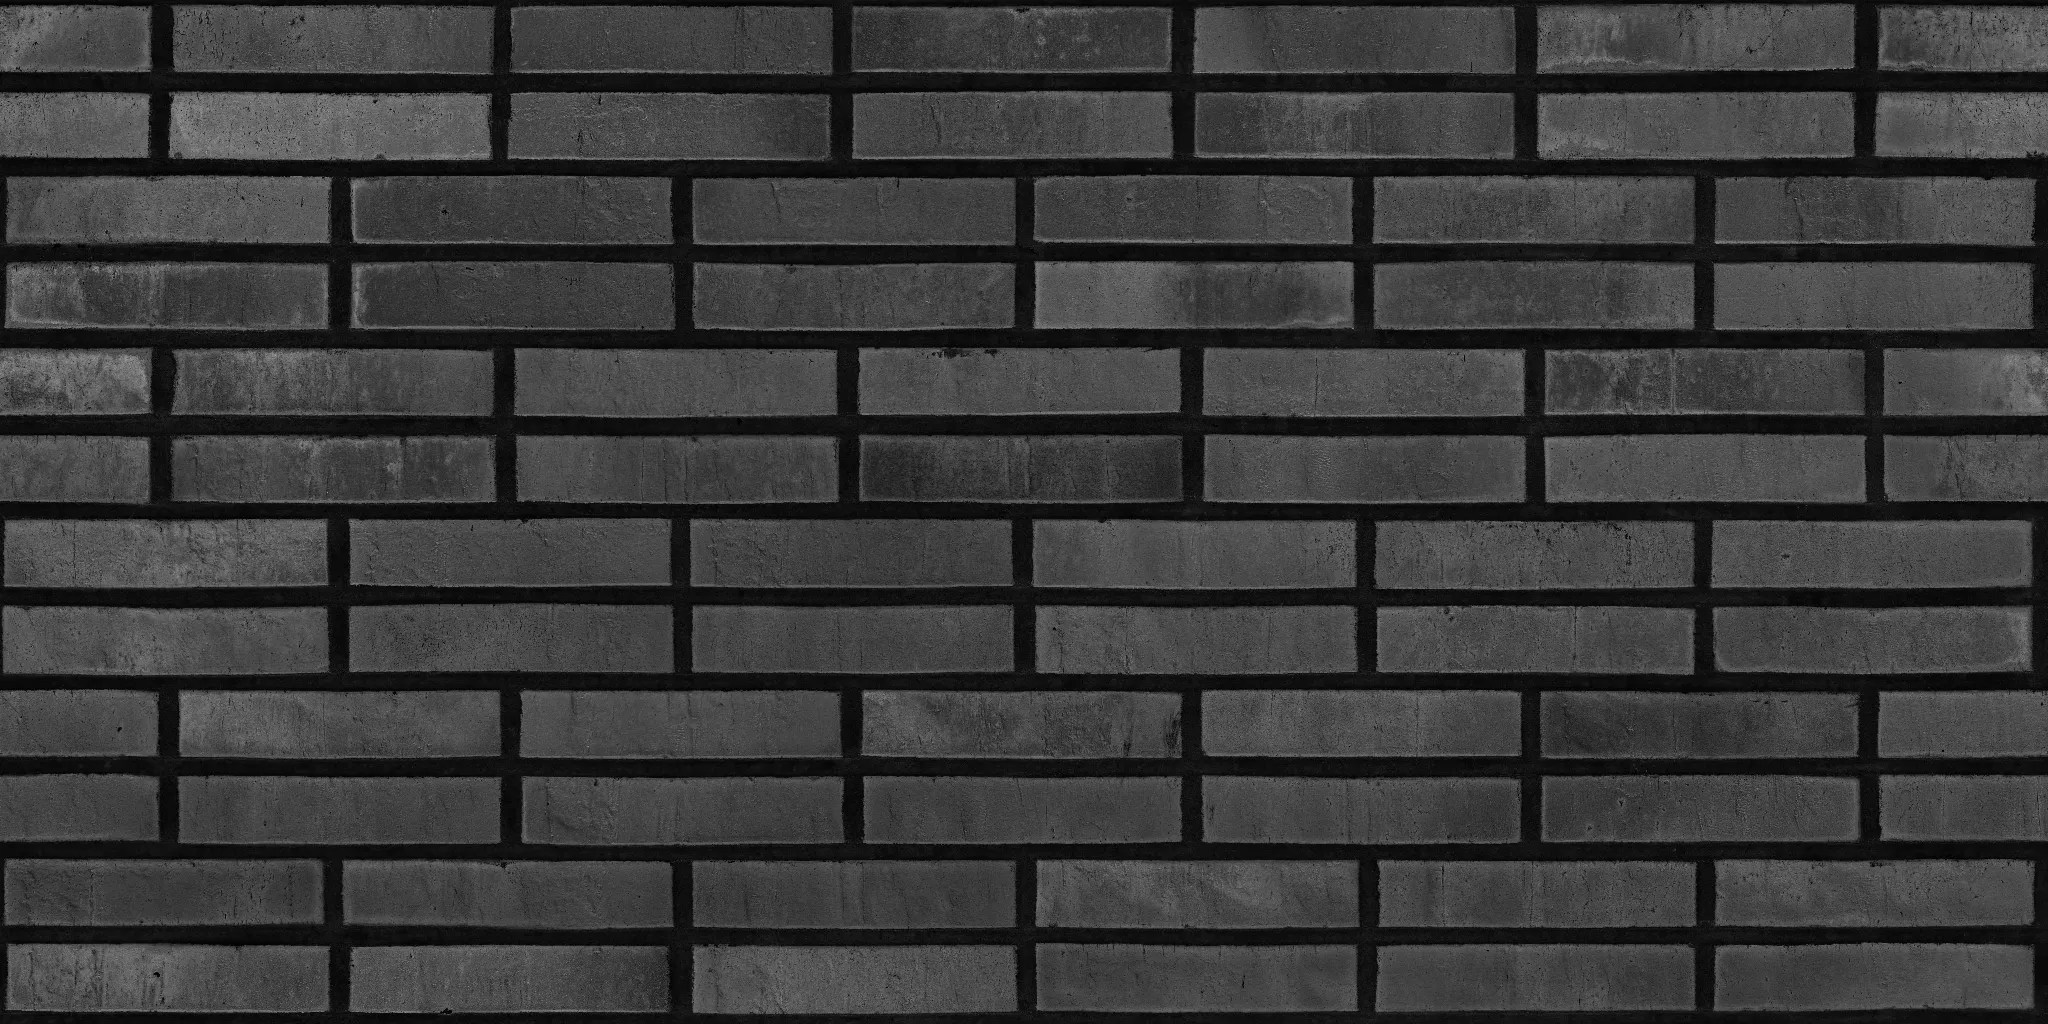 3D Scanned Seamless Brick Wall Dark Specular Map